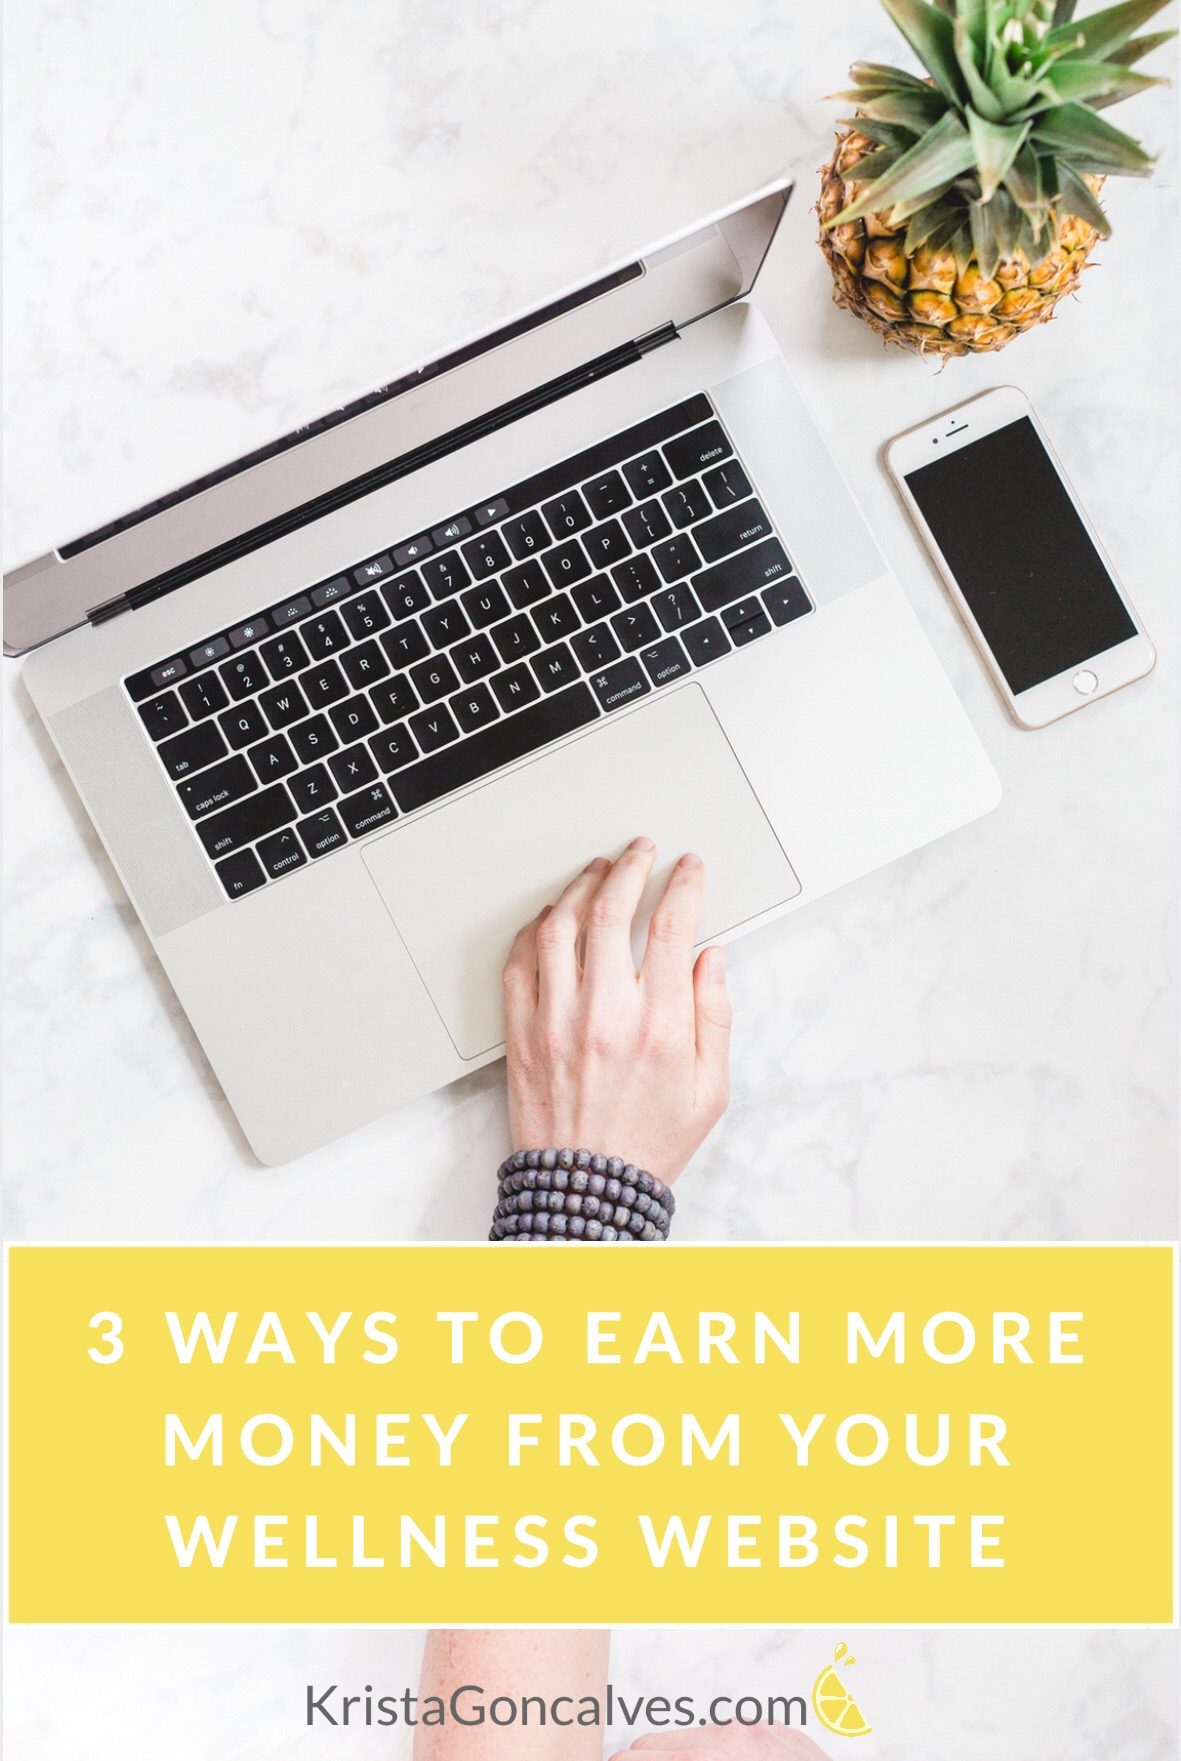 3 Ways to Earn More Money From Your Wellness Website | Making Lemonade with Krista Goncalves